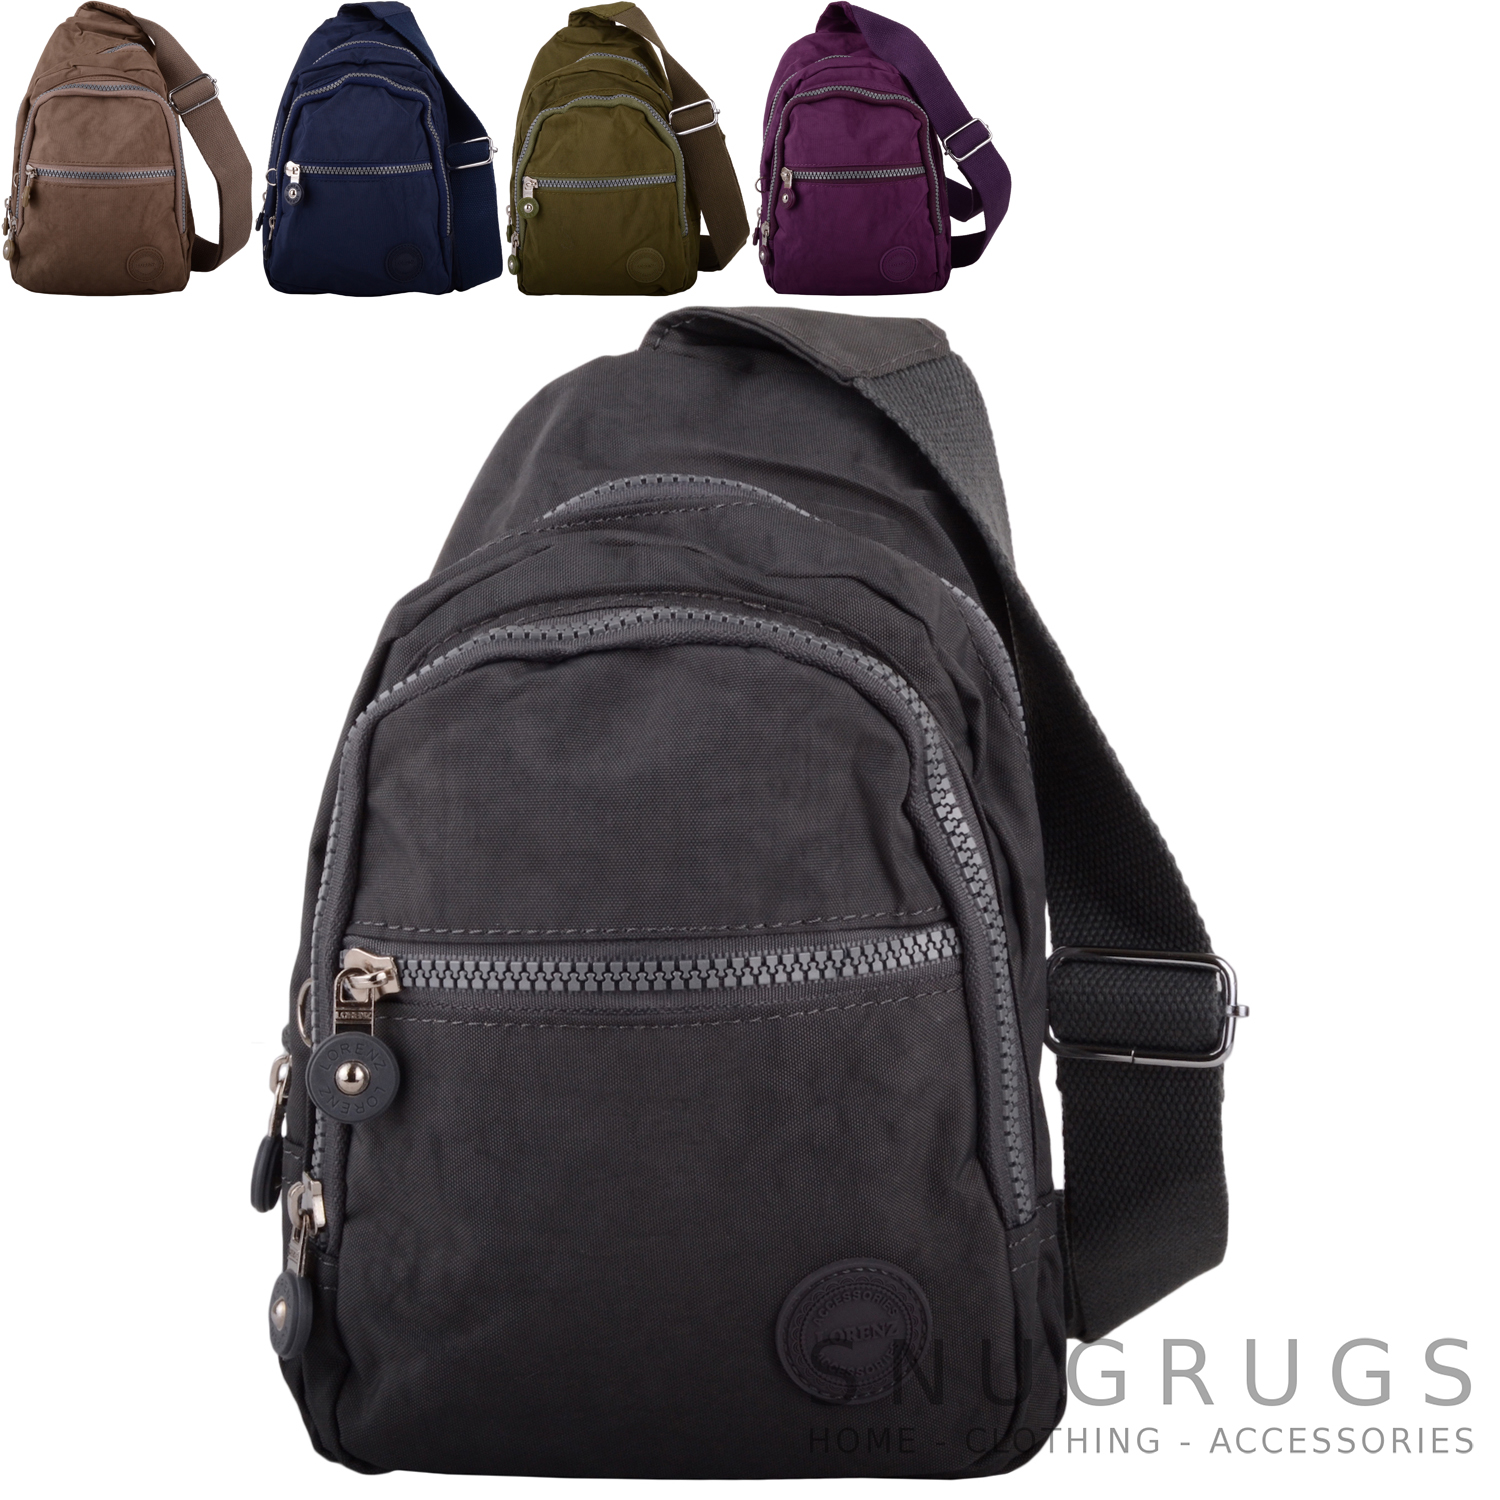 9e9b51c4bf9 Details about Mens   Womens Small Nylon Backpack   Ruck Sack   Shoulder Bag